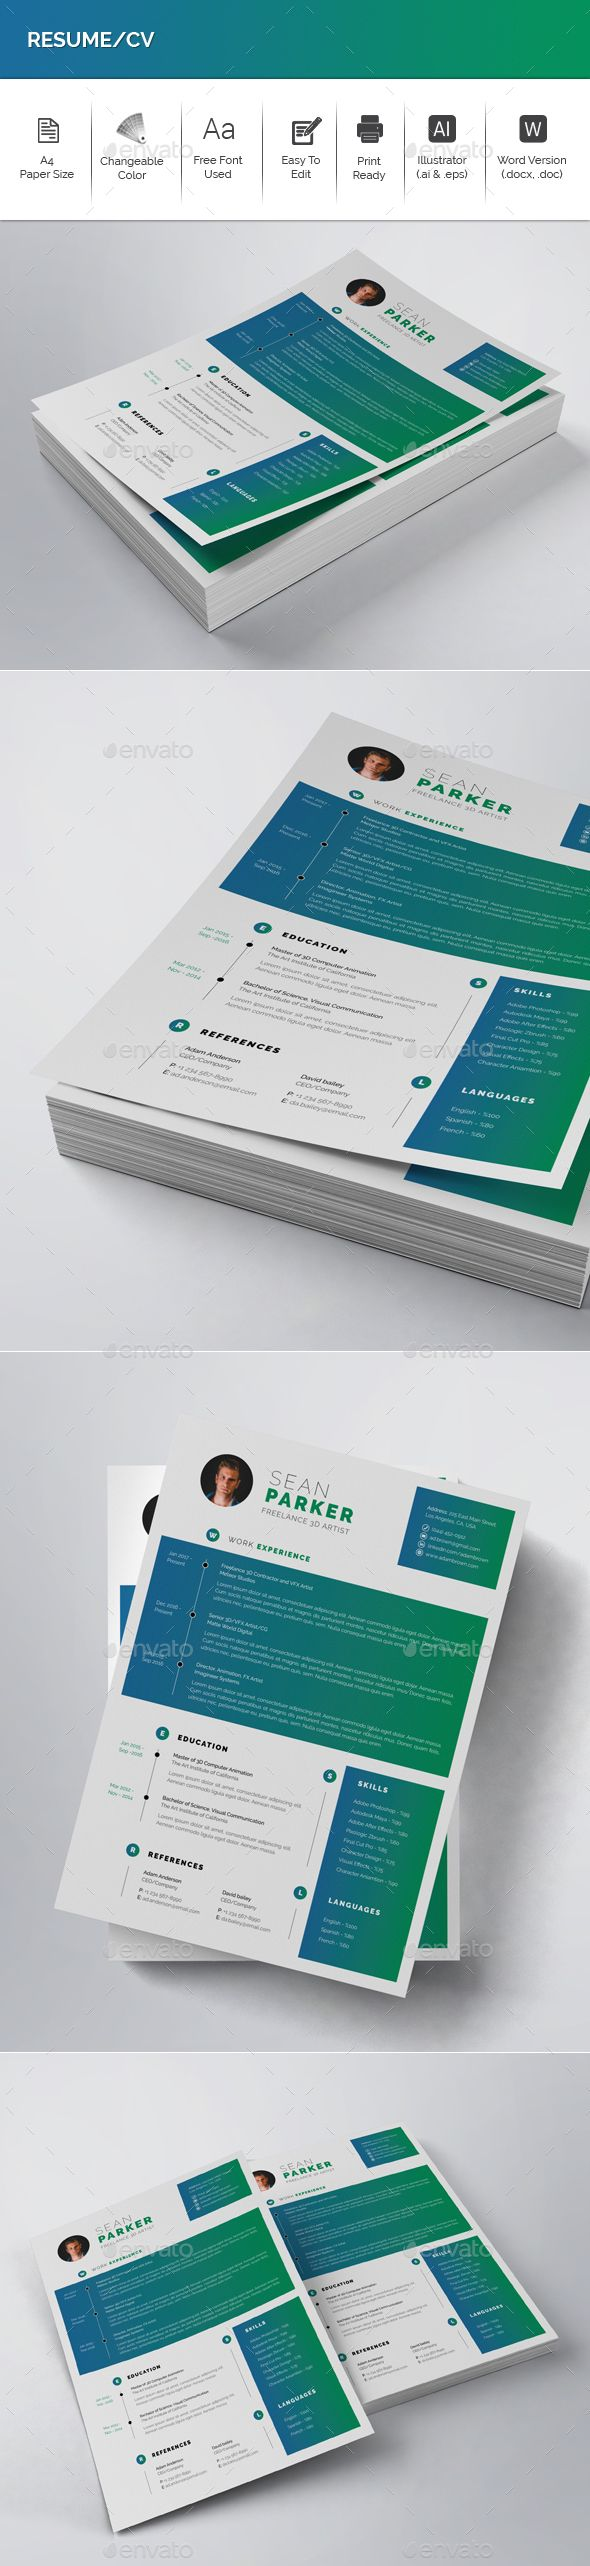 ResumeCV 100 best CV images on Pinterest